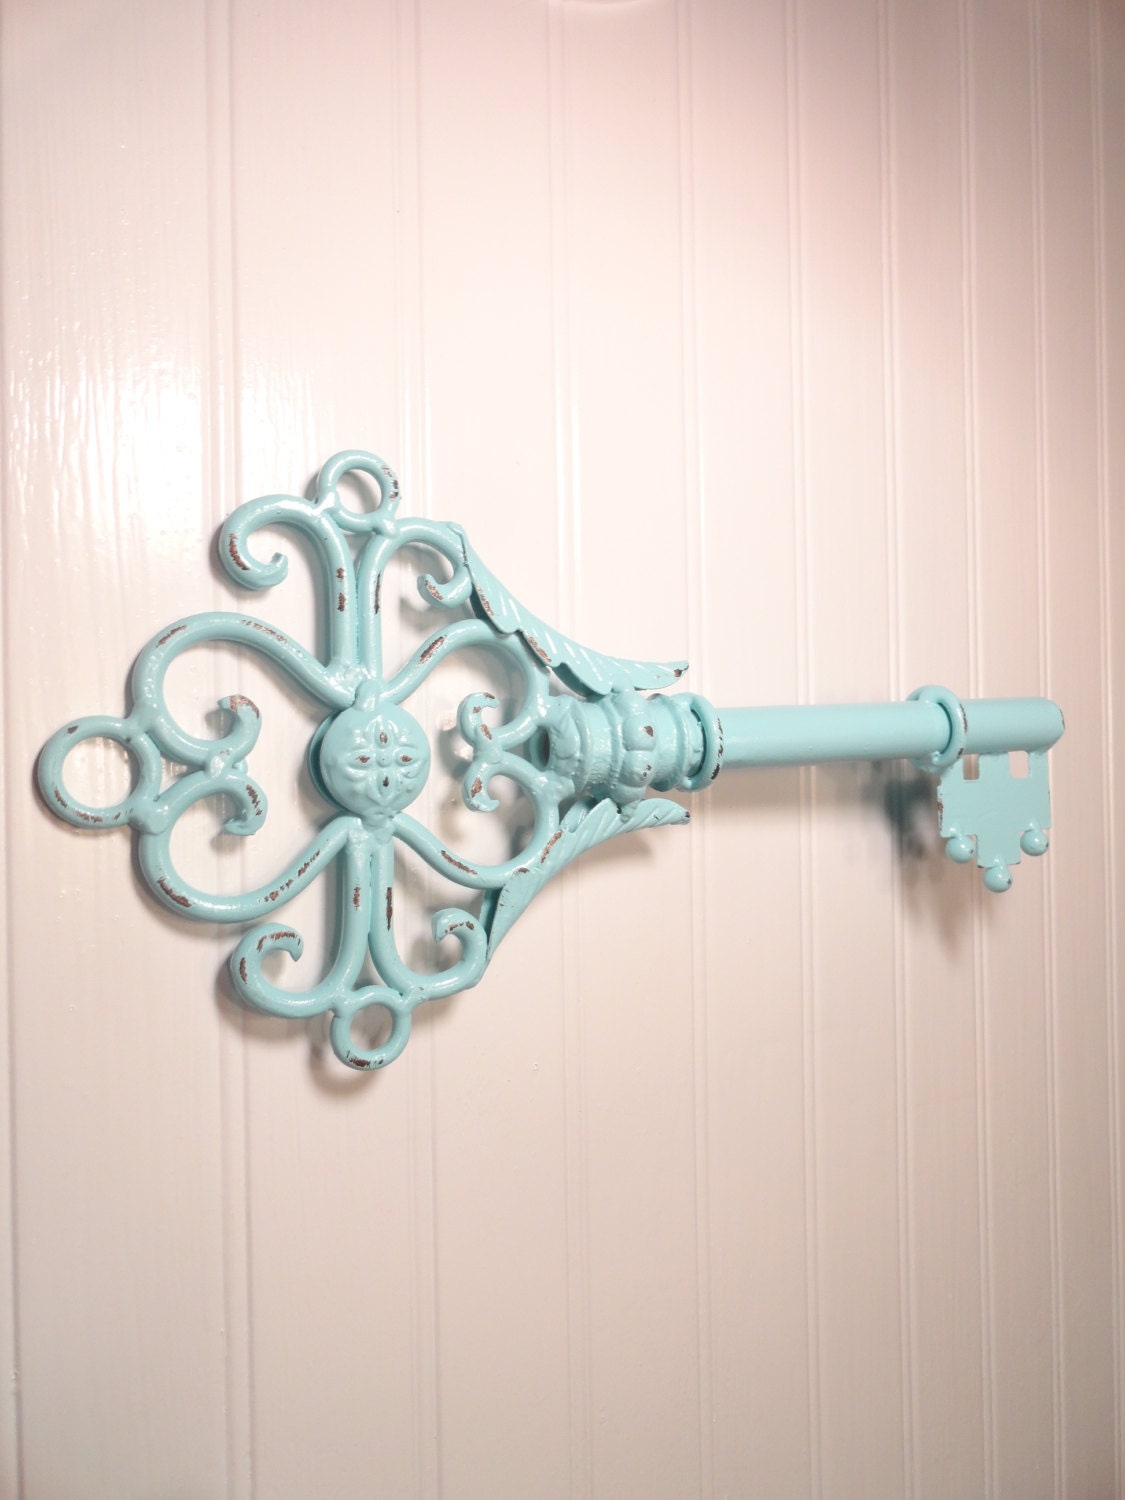 Wall Decor Keys : Metal skeleton key wall decor shabby chic wrought iron